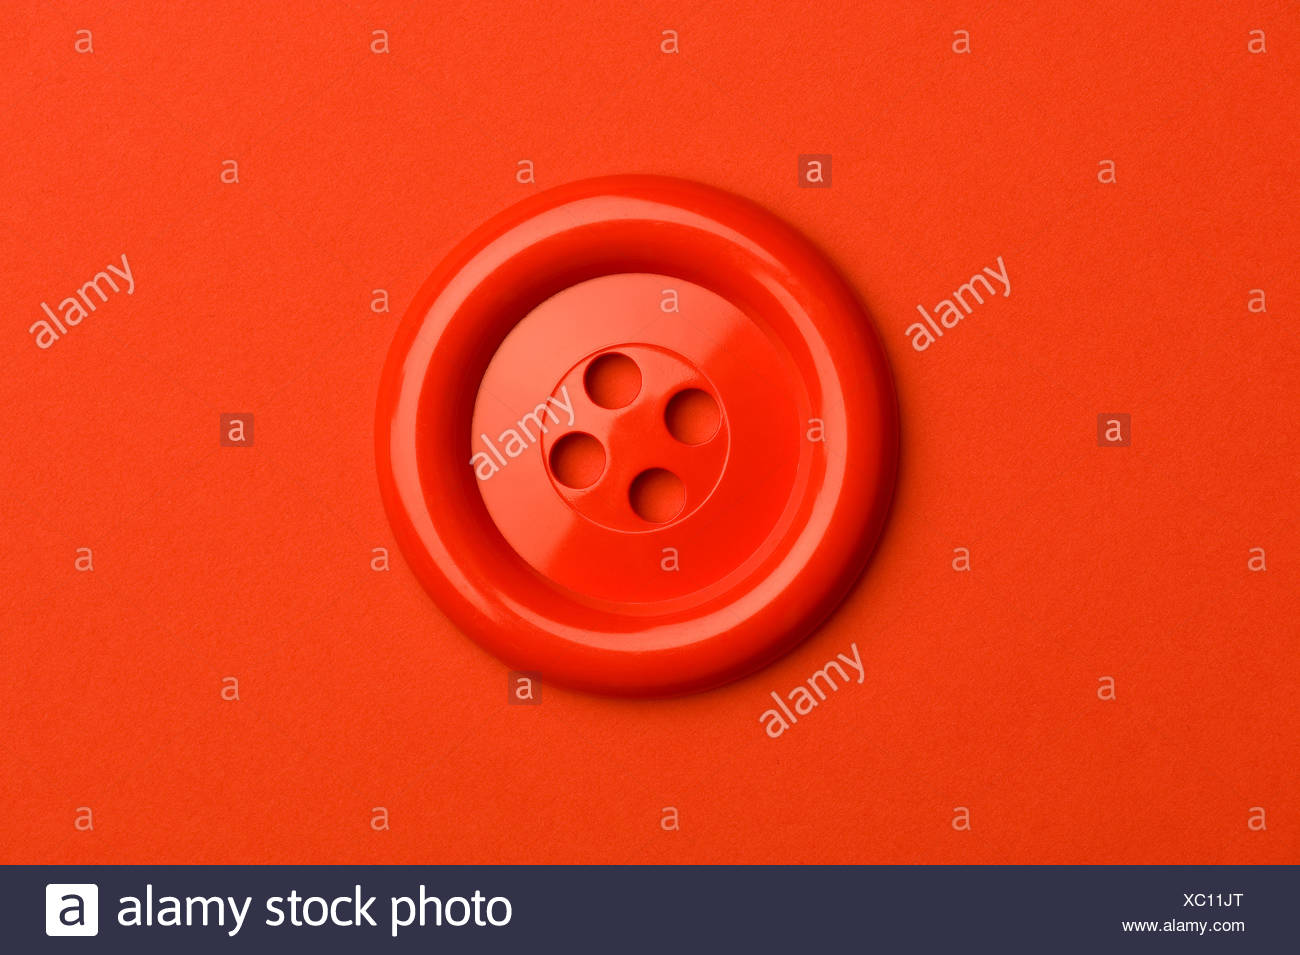 a31101ea0fa8c Red Background Stock Photos & Red Background Stock Images - Alamy